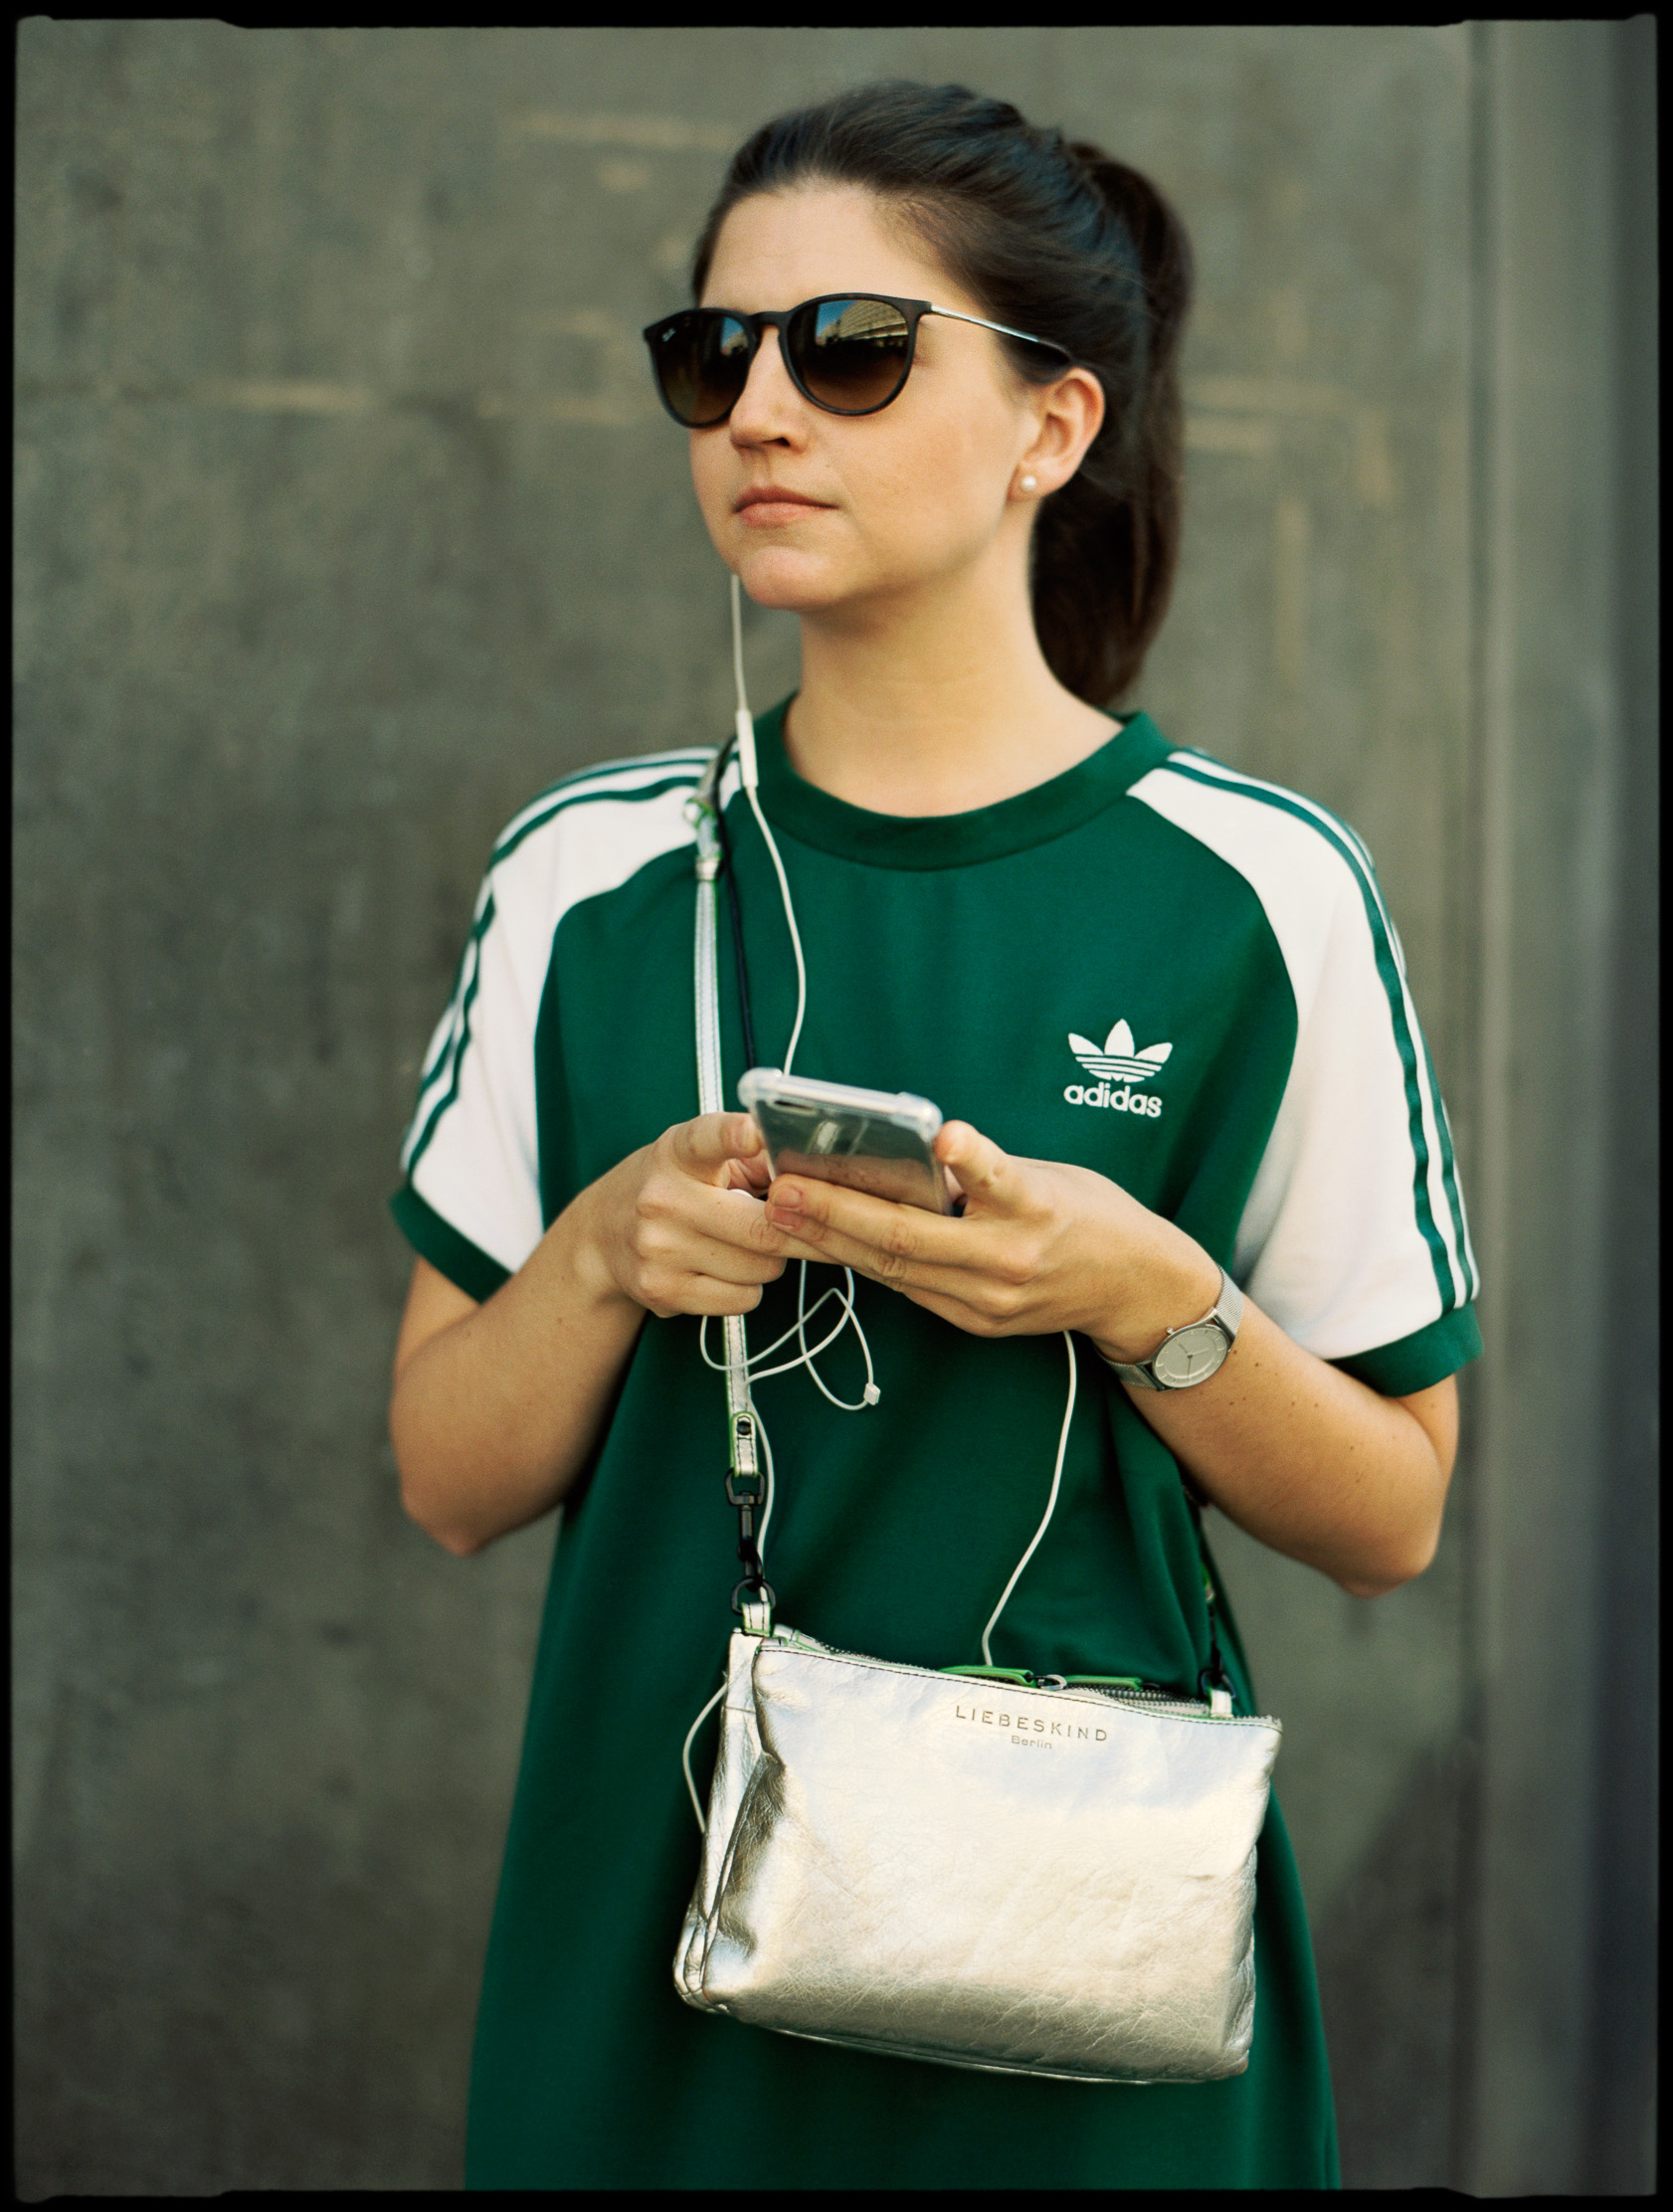 woman in an adidas dress